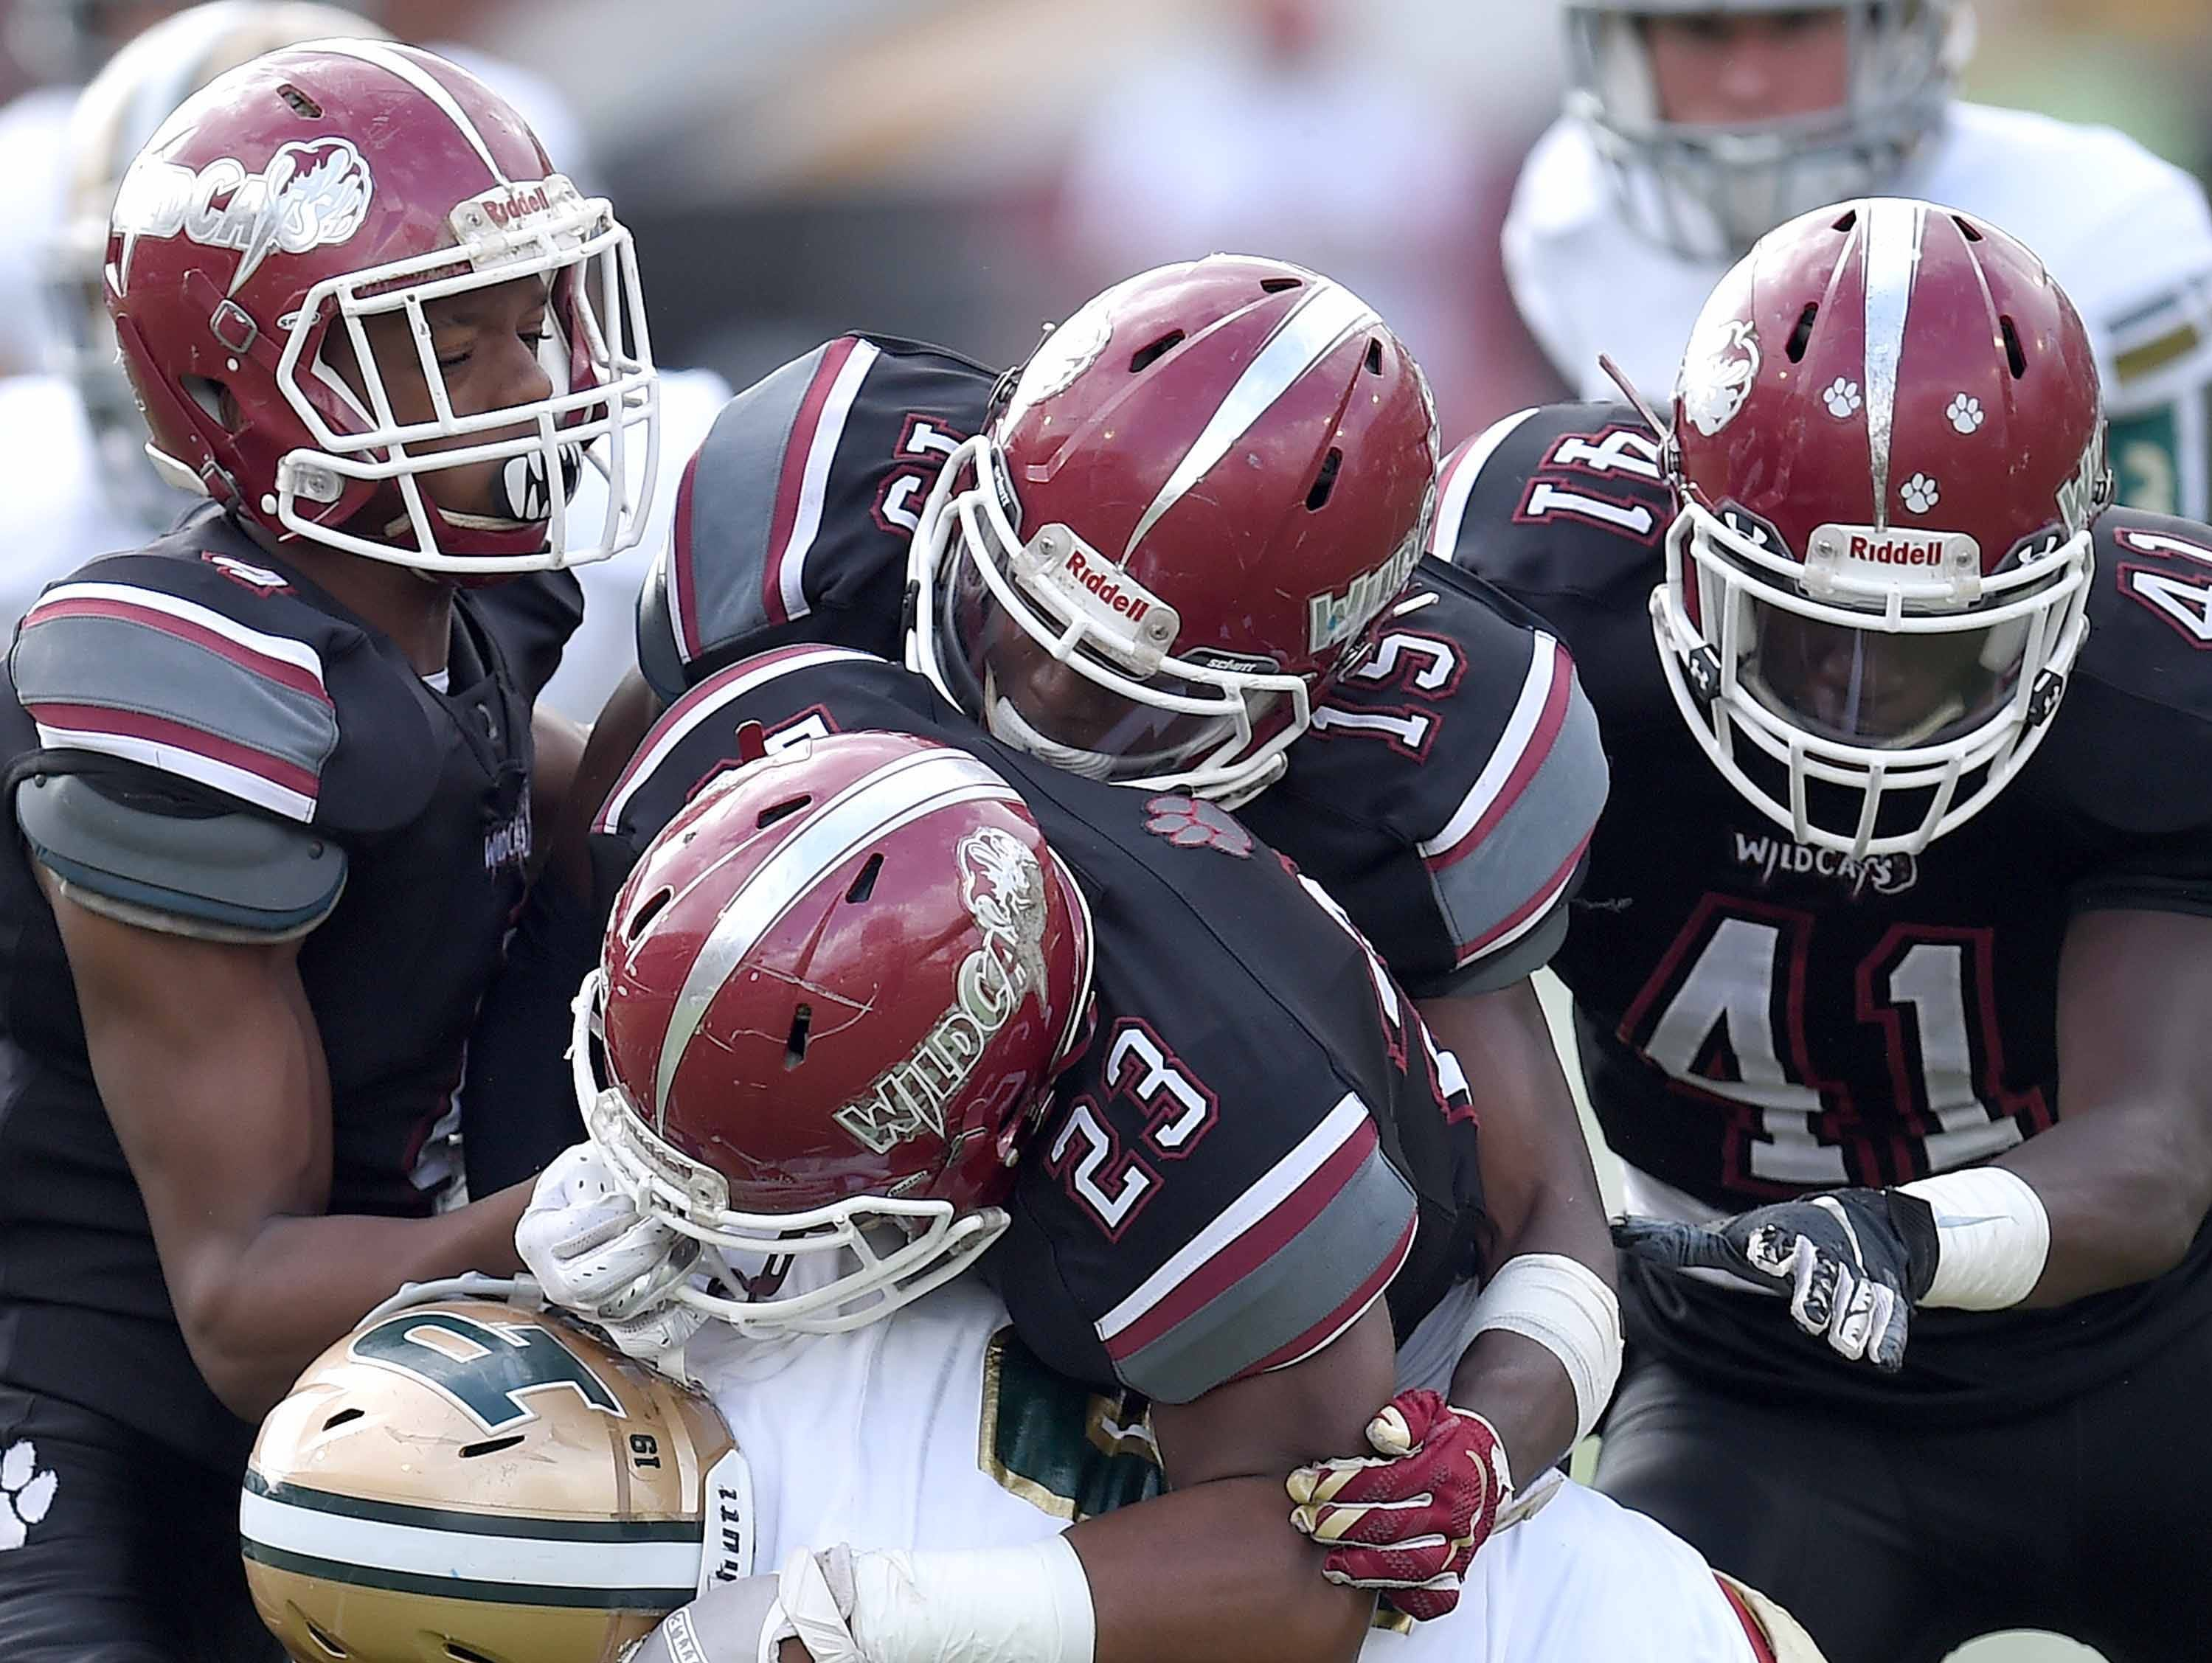 The Louisville defense swarm over a Poplarville ball carrier on Saturday, December 1, 2018, in the MHSAA BlueCross BlueShield Gridiron Classic High School Football Championships in M.M. Roberts Stadium on the University of Southern Mississippi campus in Hattiesburg, Miss.